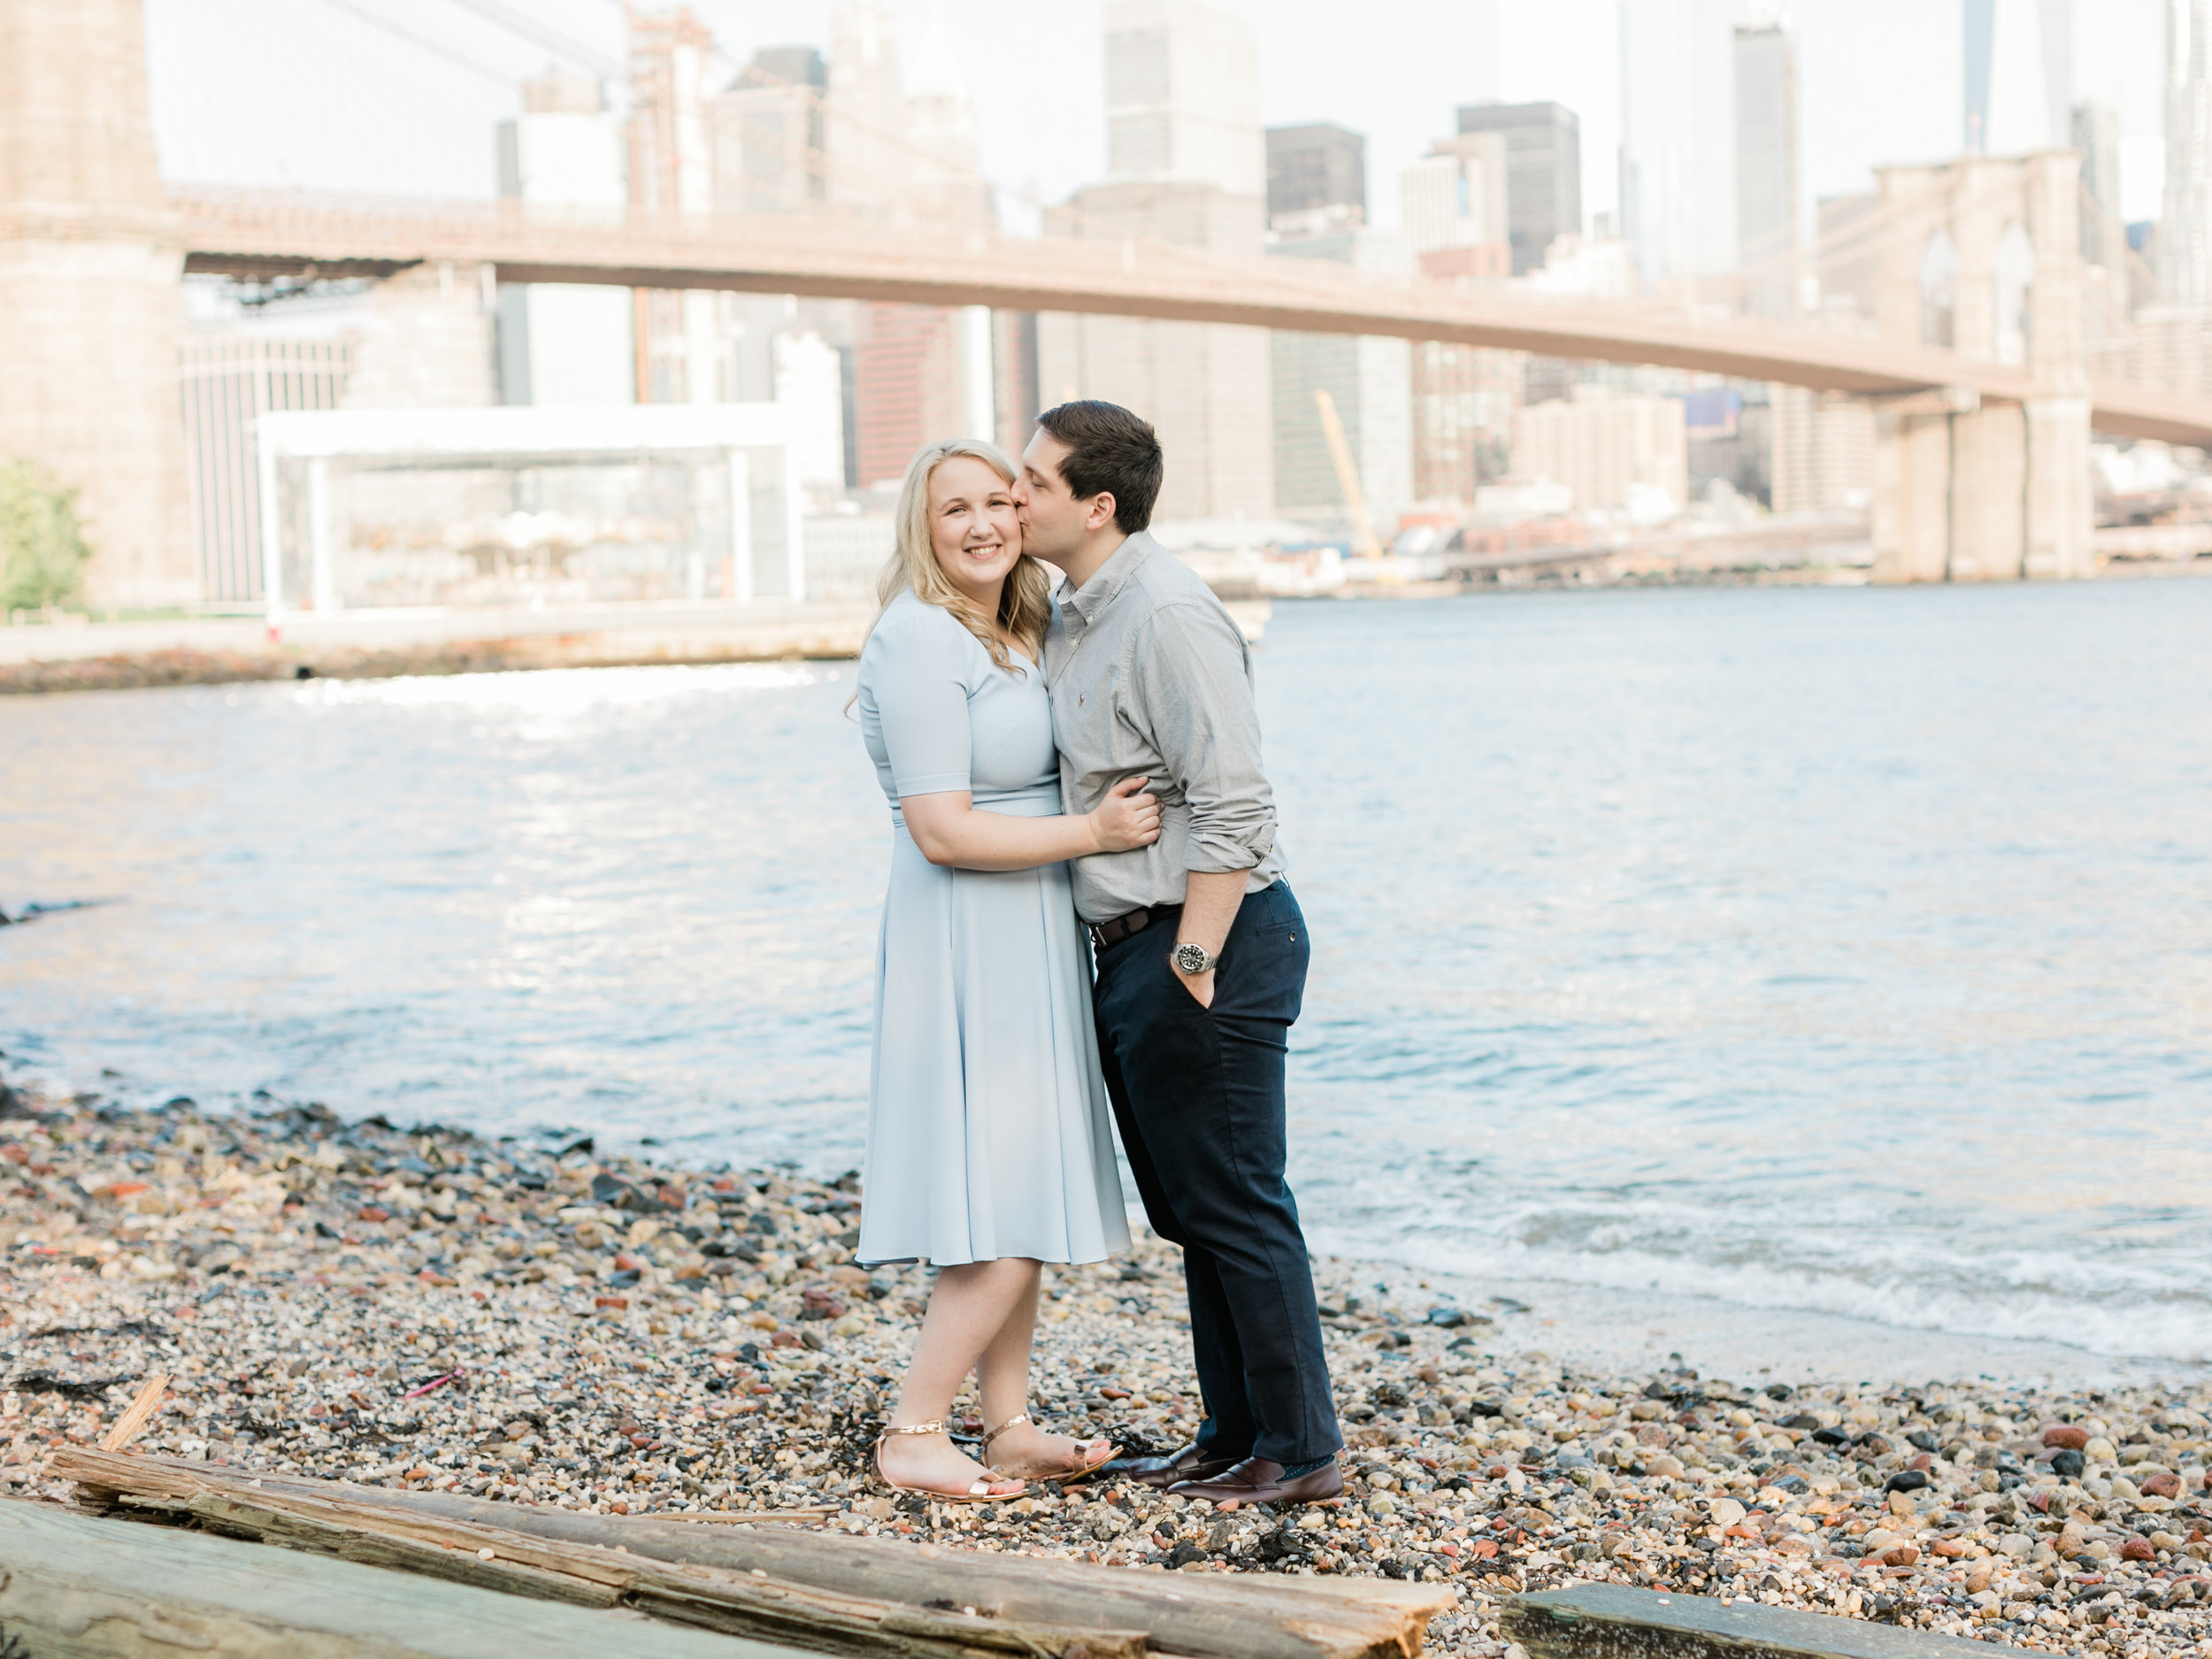 nyc-engagement-photographer-asher-gardner2.jpg